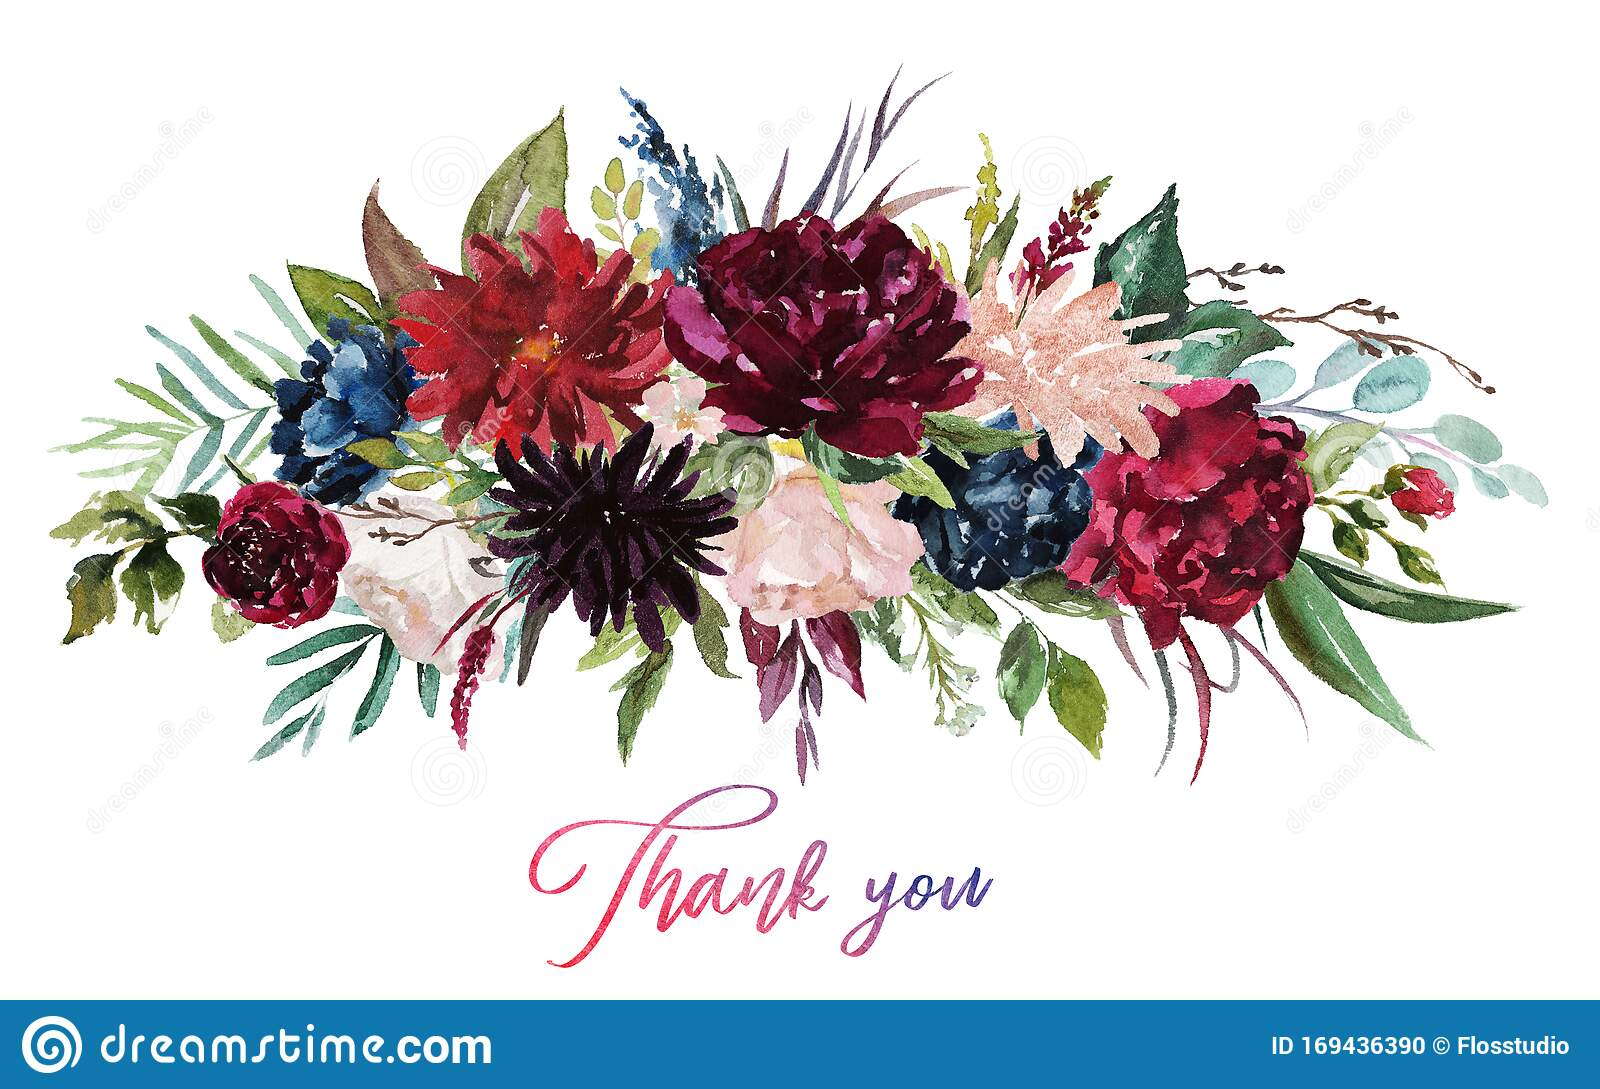 Watercolor Floral Illustration Flowers Burgundy Bouquet Stock Illustration Illustration Of Invitation Blue 169436390